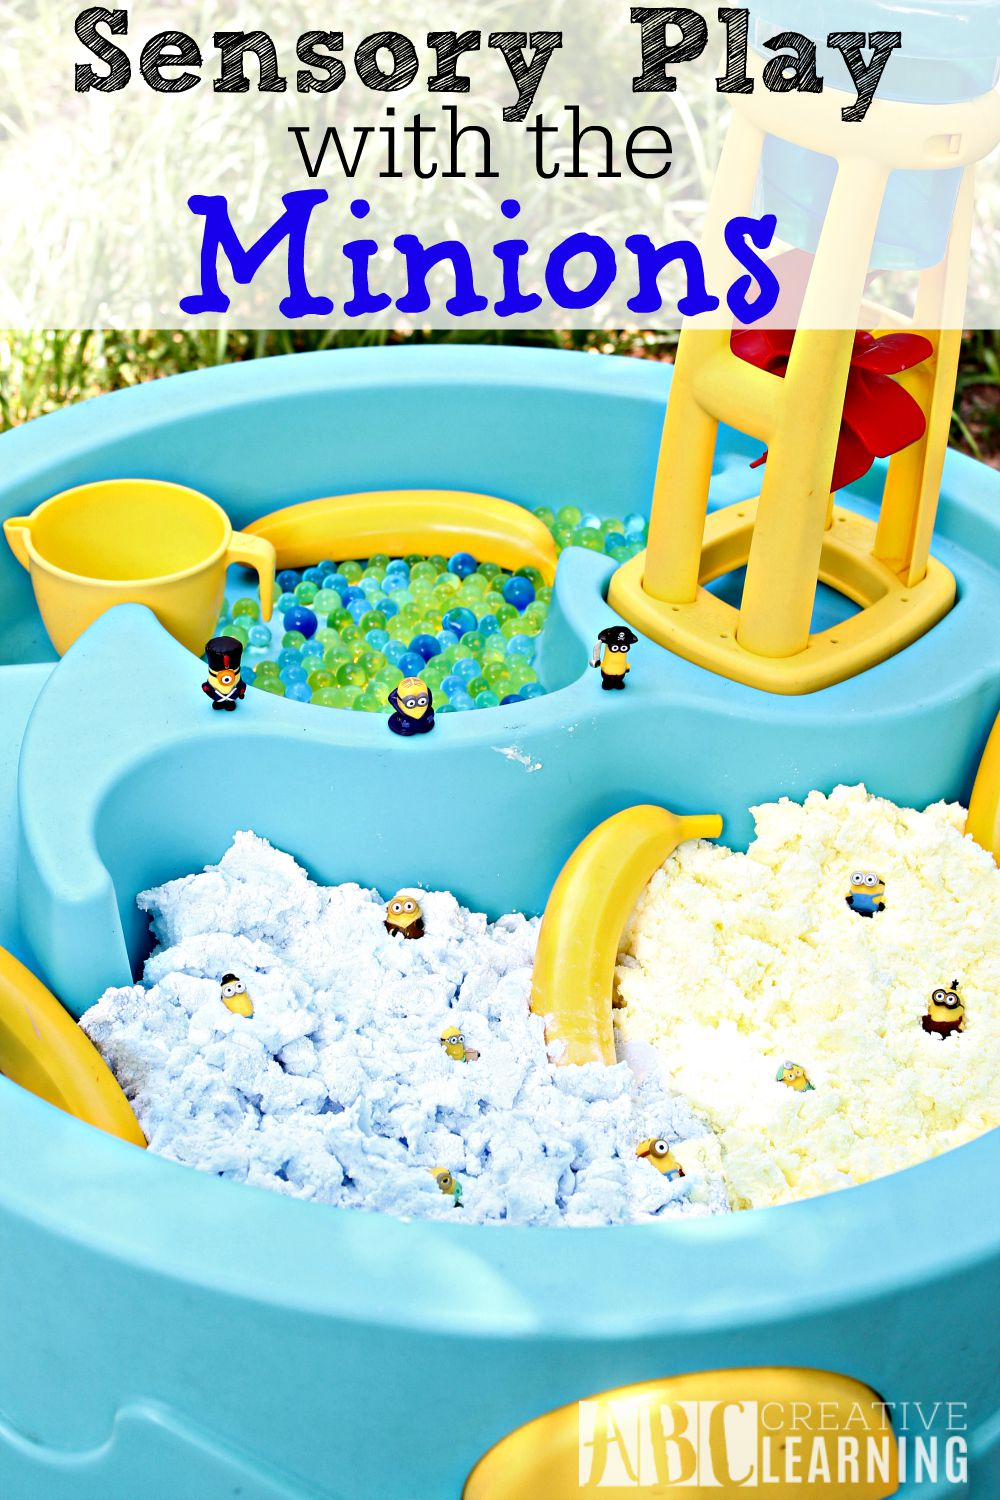 Sensory Play with the Minions